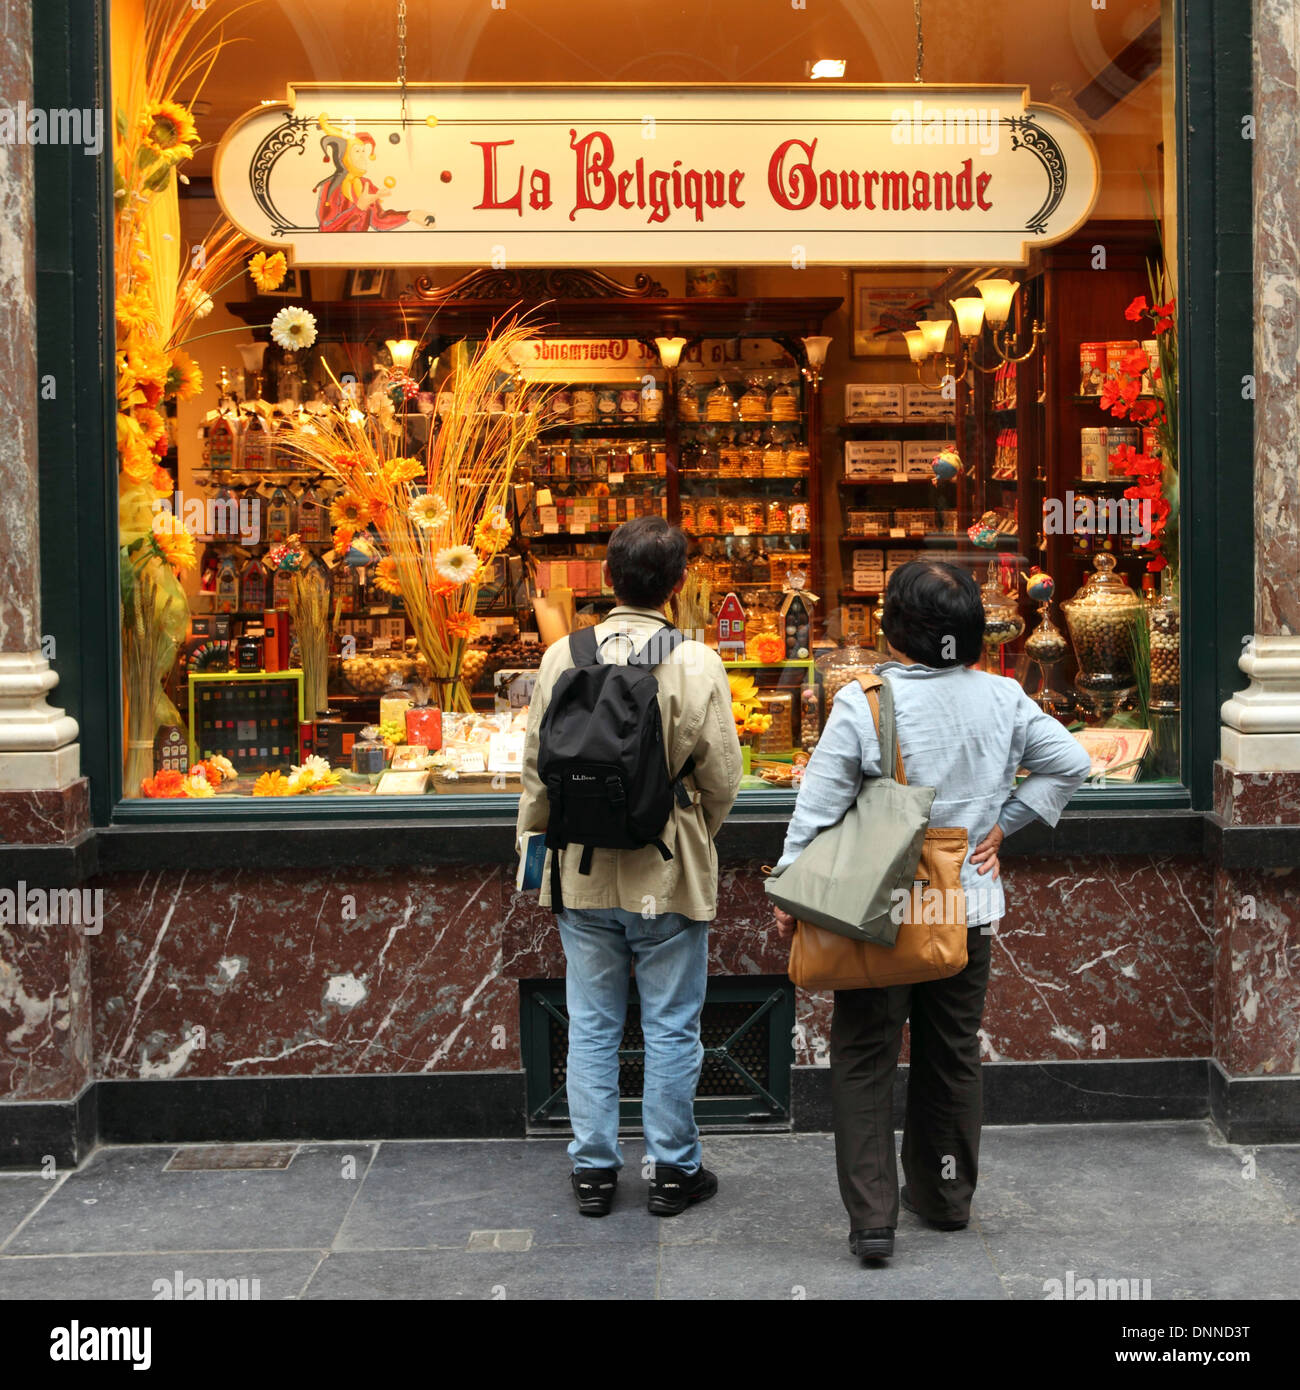 Tourists looks at a Belgian gourmet shop in the Galeries Royales Saint-Hubert shopping gallery in Brussels, Belgium. - Stock Image